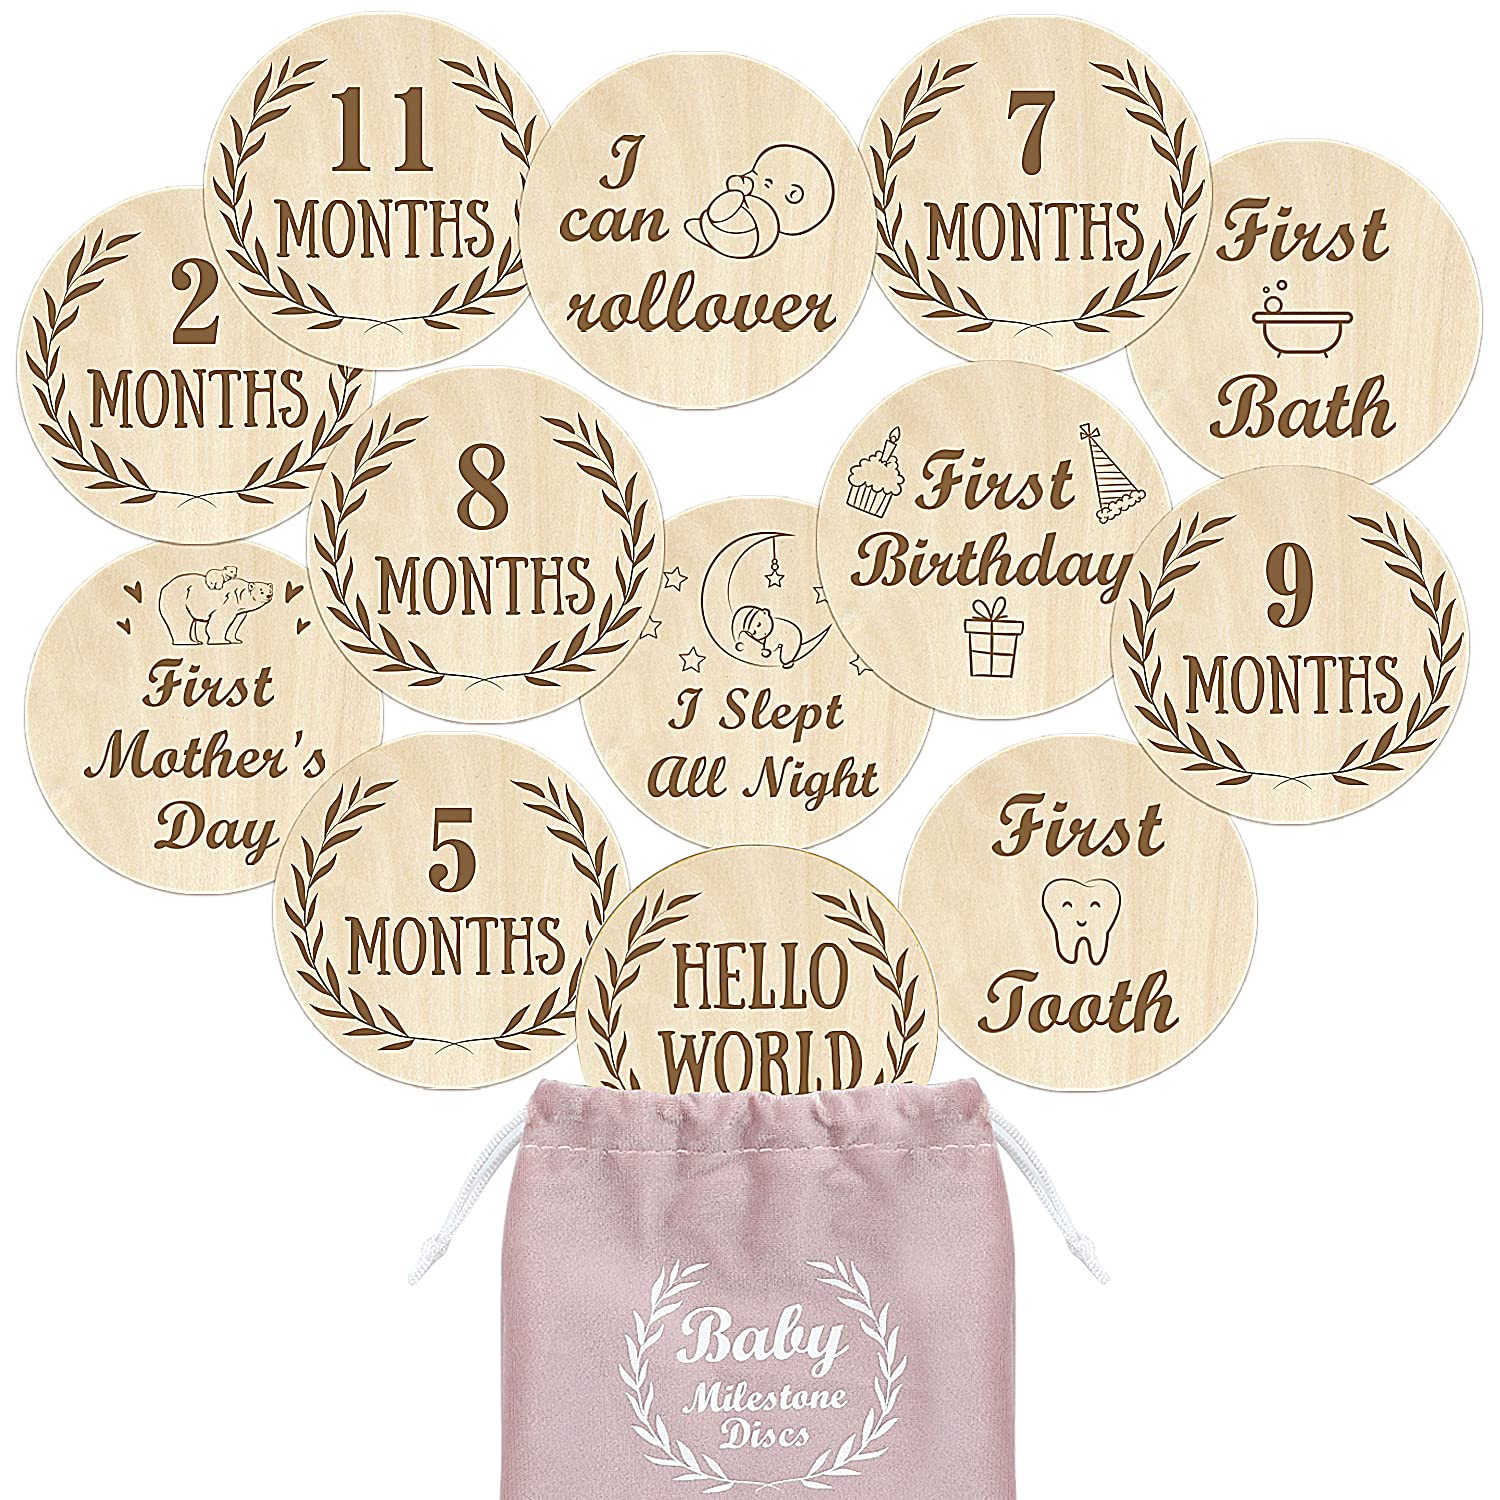 Baby Milestone Cards Selling rankings Wooden Monthly Popular popular and Doub First Infant